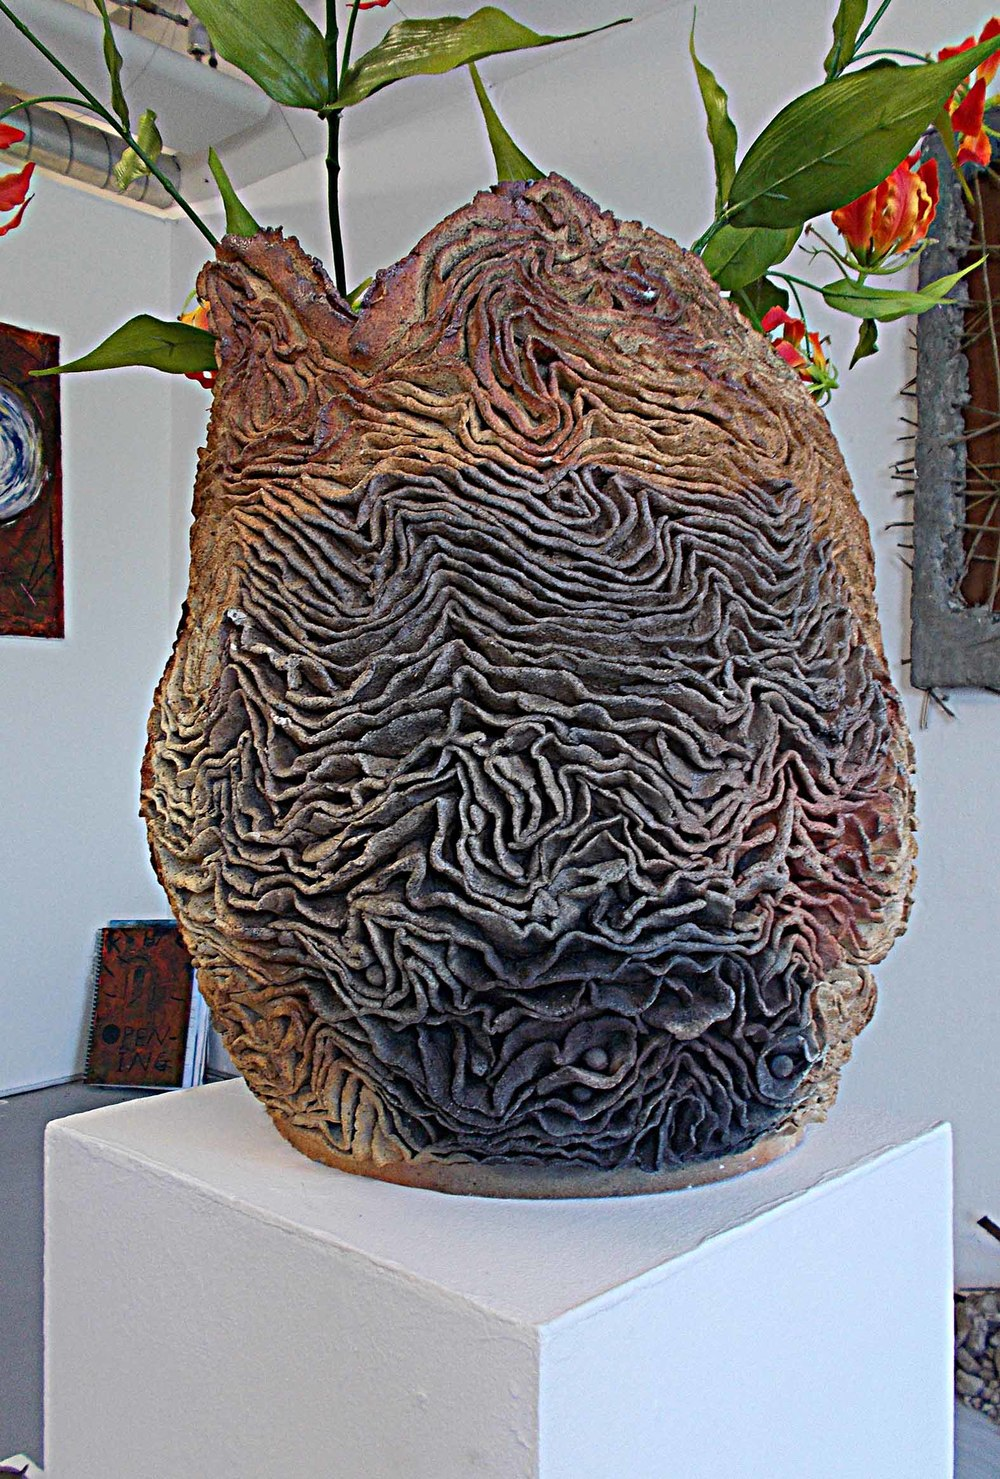 Diane  Beckett Ceramic 13-14.jpg